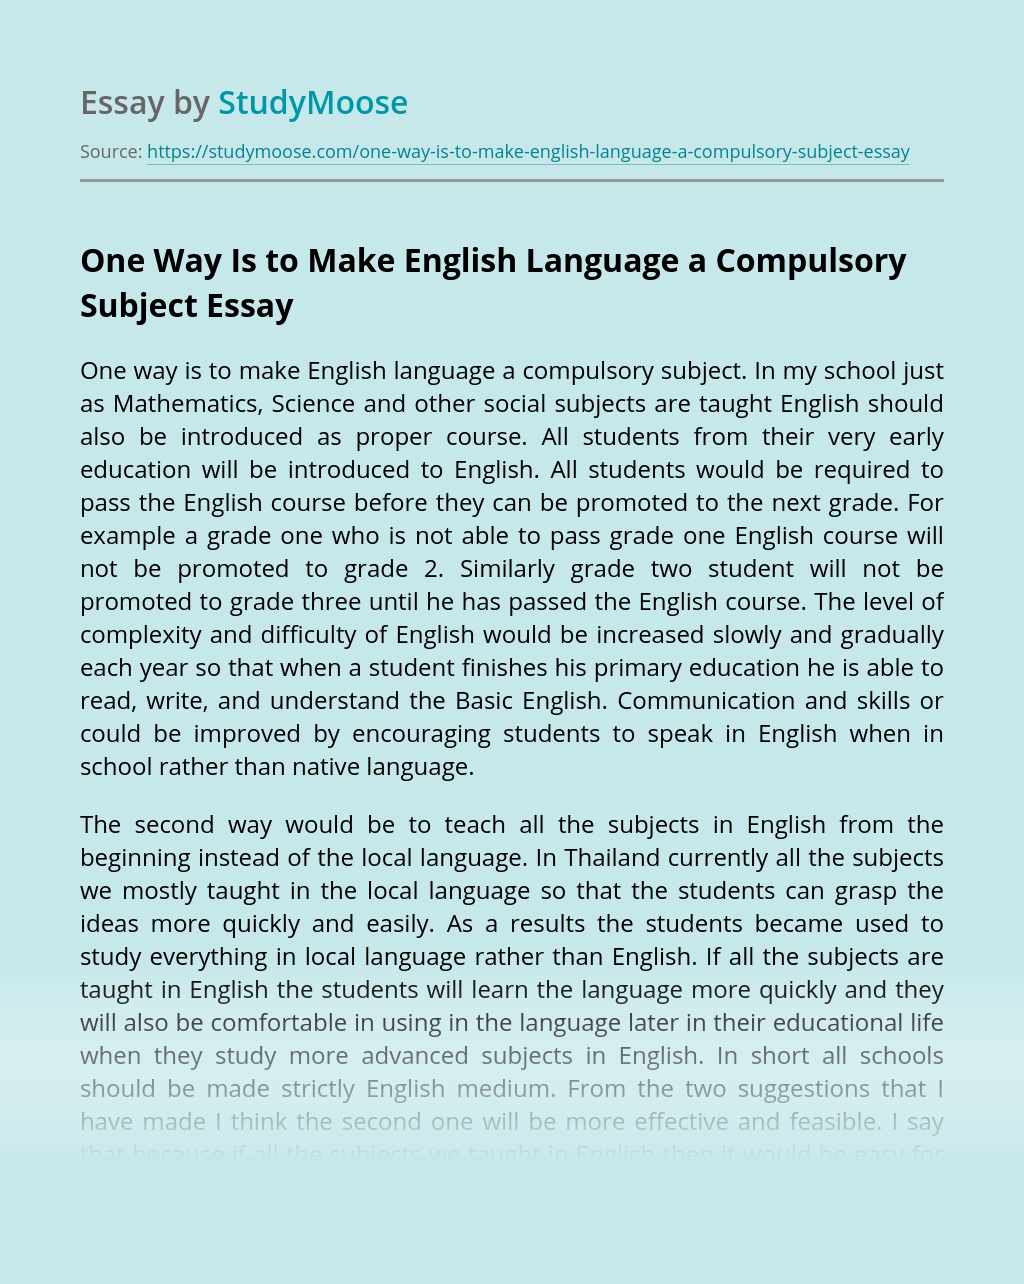 One Way Is to Make English Language a Compulsory Subject